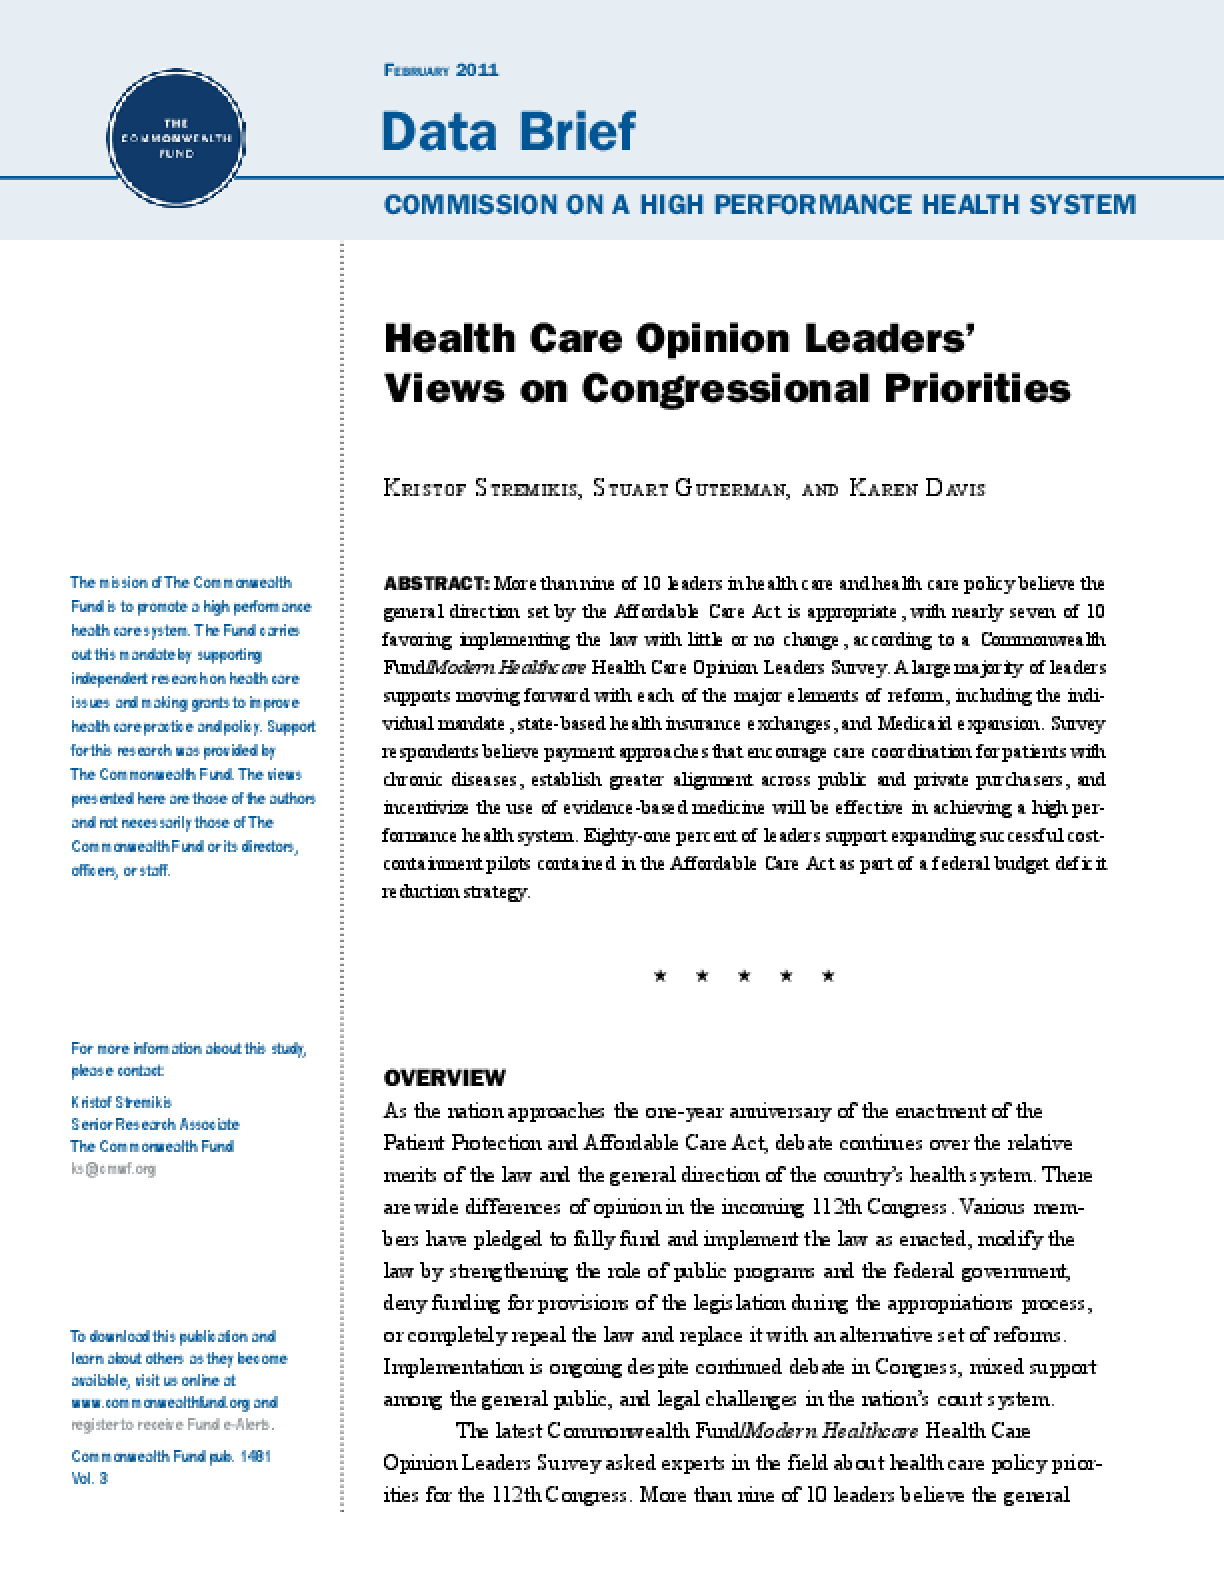 Health Care Opinion Leaders' Views on Congressional Priorities